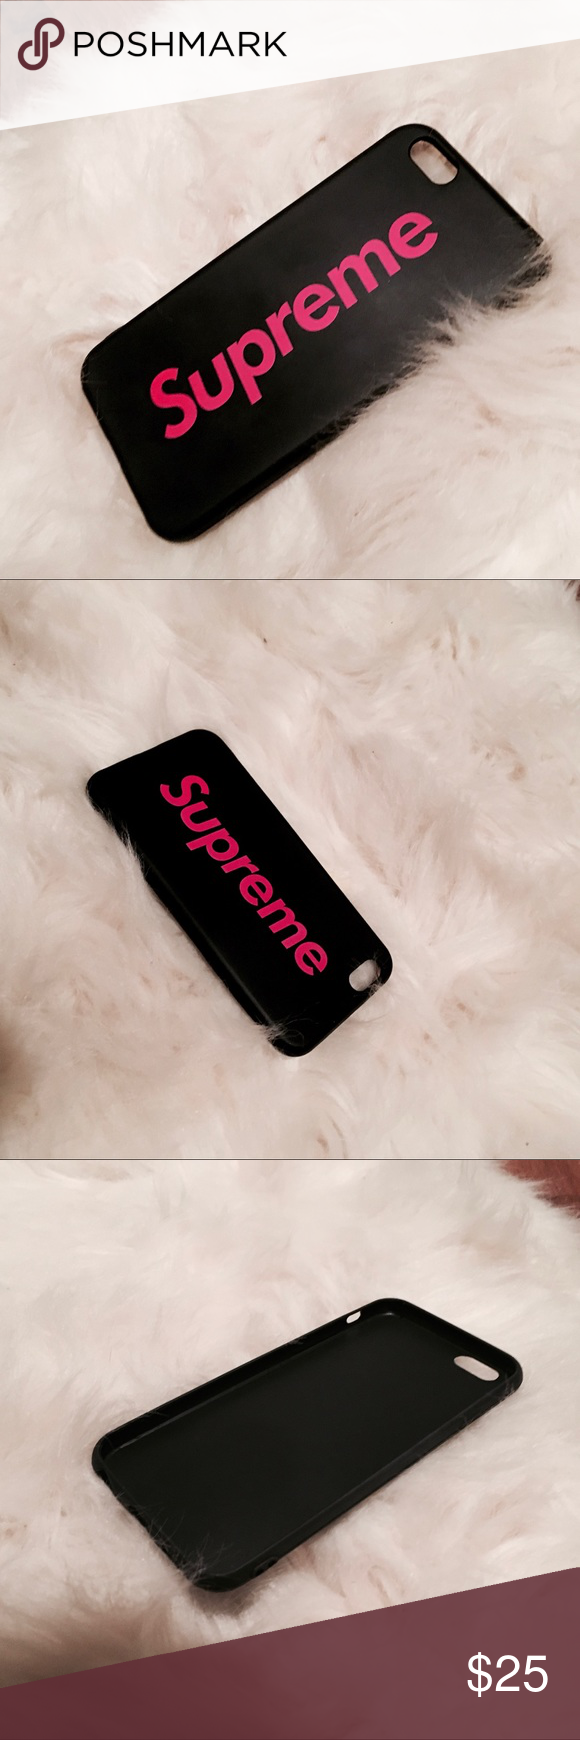 promo code 4ab52 aaa6b 👽 Supreme Pink & Black Jelly IPhone 6 6s case 👽 Supreme Pink ...